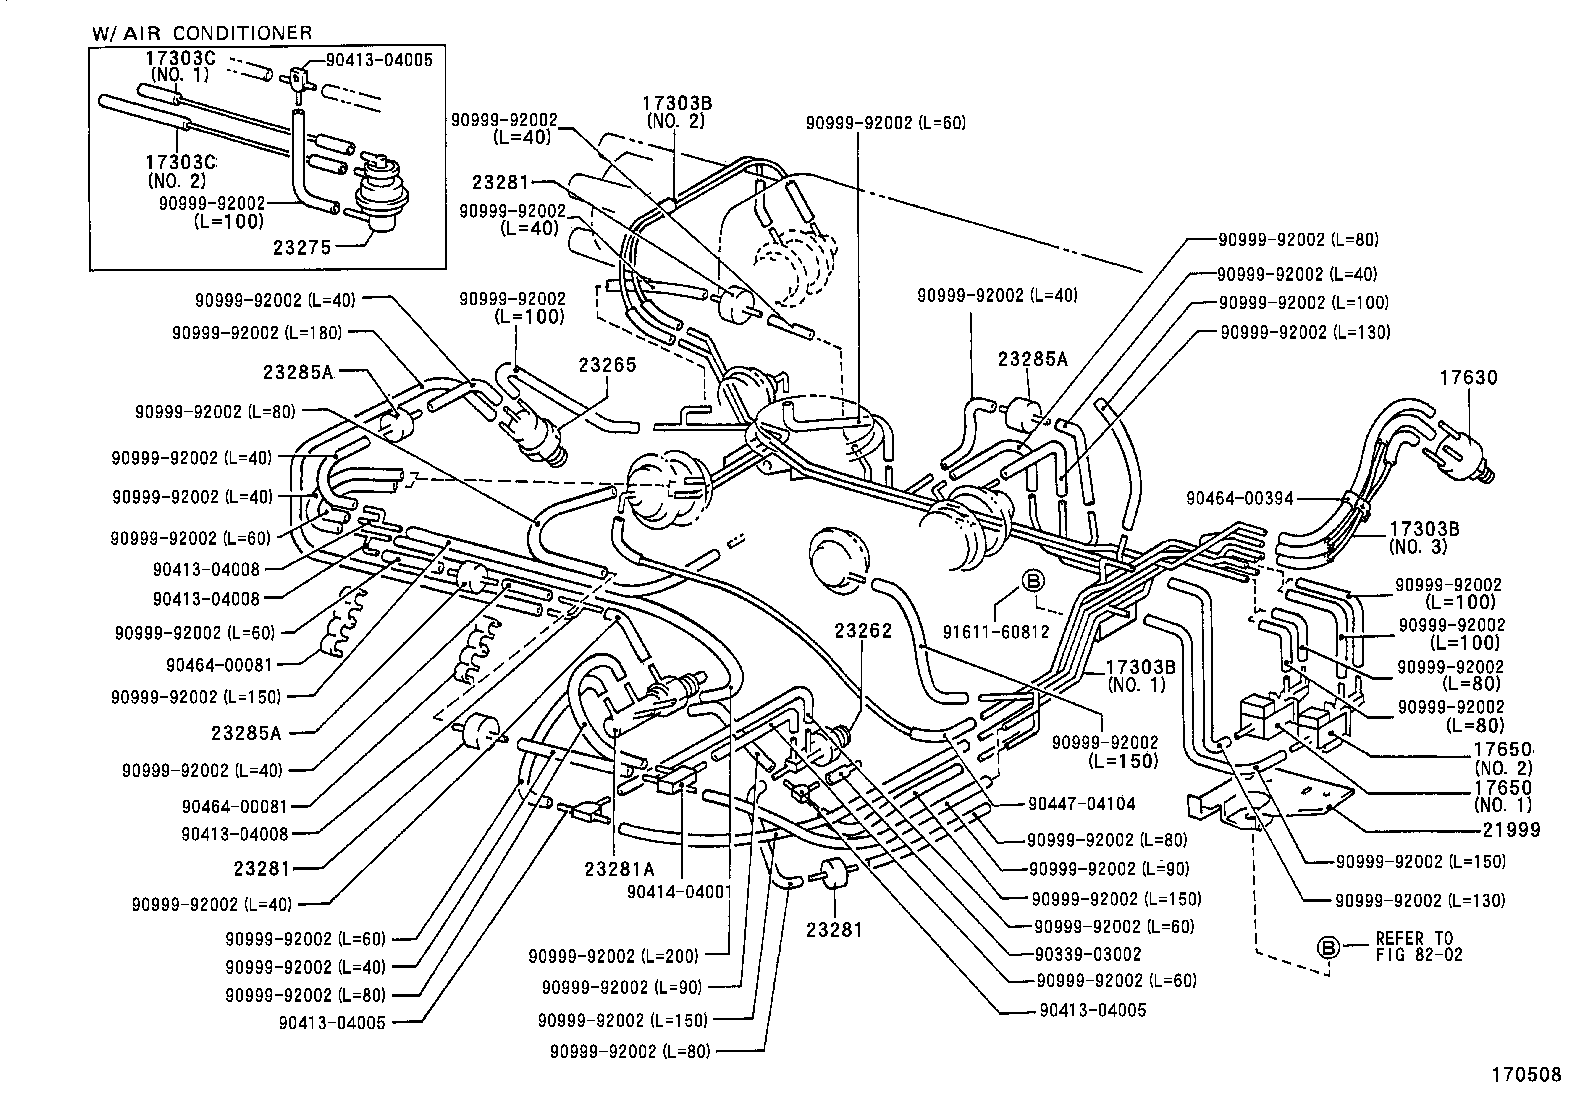 2012 Nissan An Parts Diagram. Nissan. Auto Wiring Diagram